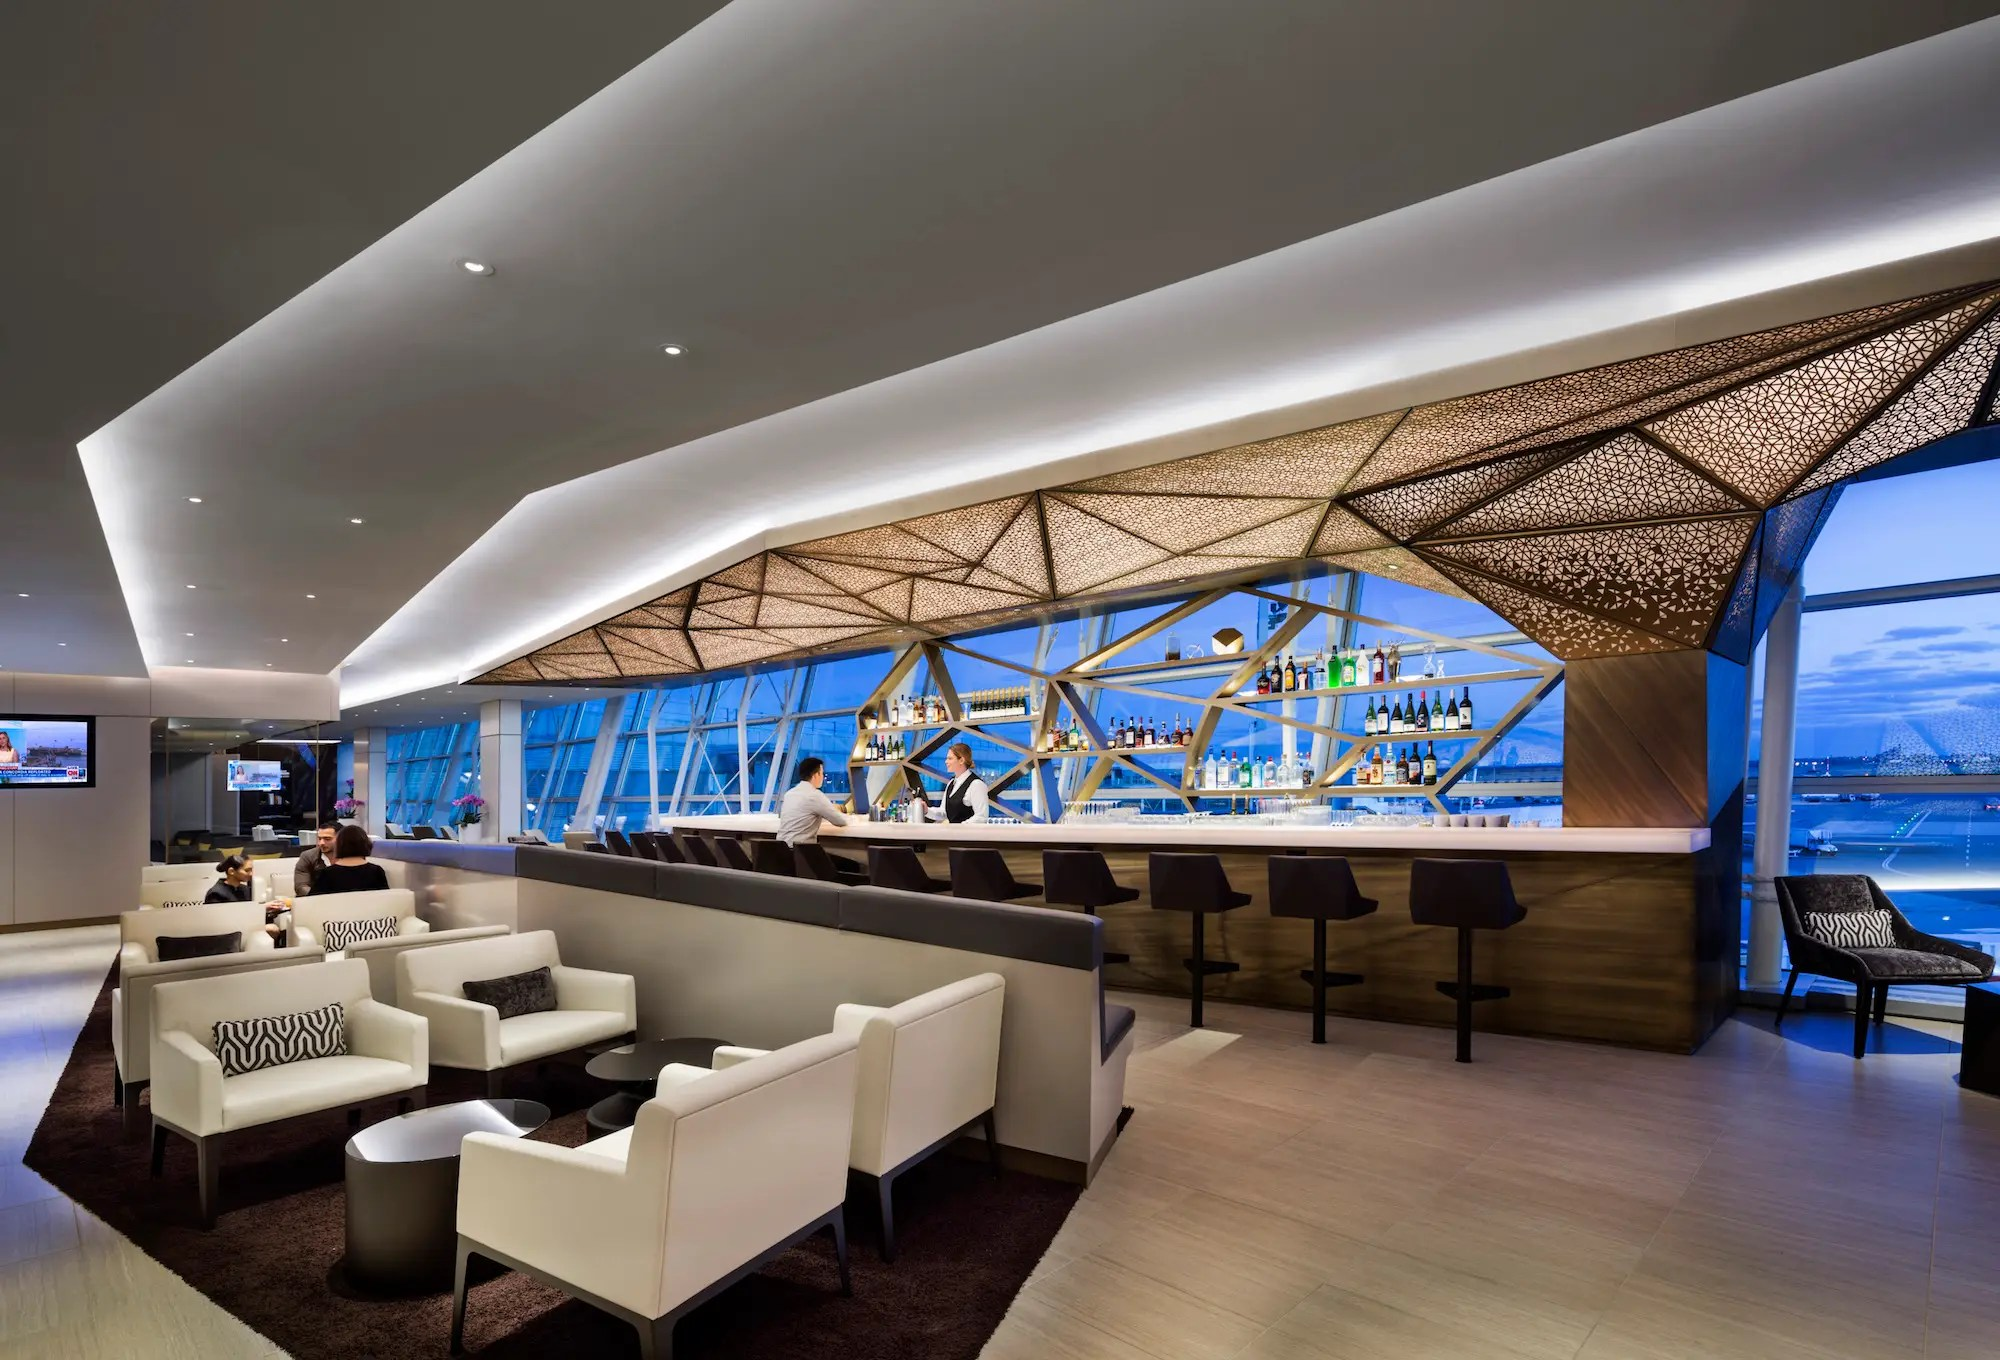 The lounge was designed by Chicago-based architects Gensler.